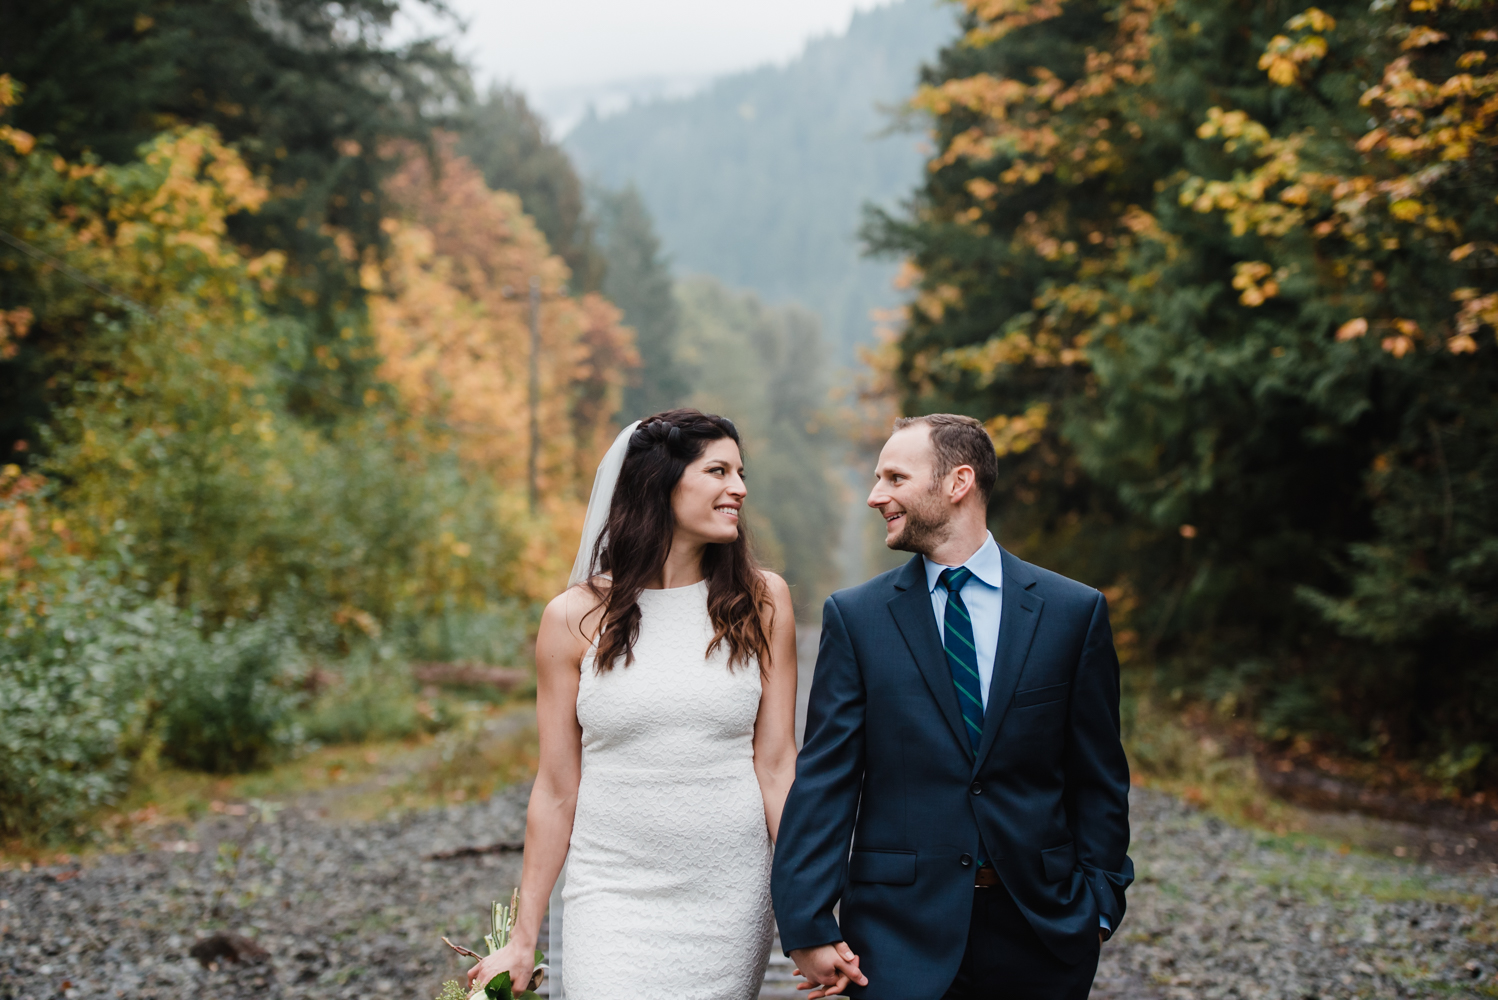 Squamish Wedding Photographer125.jpg